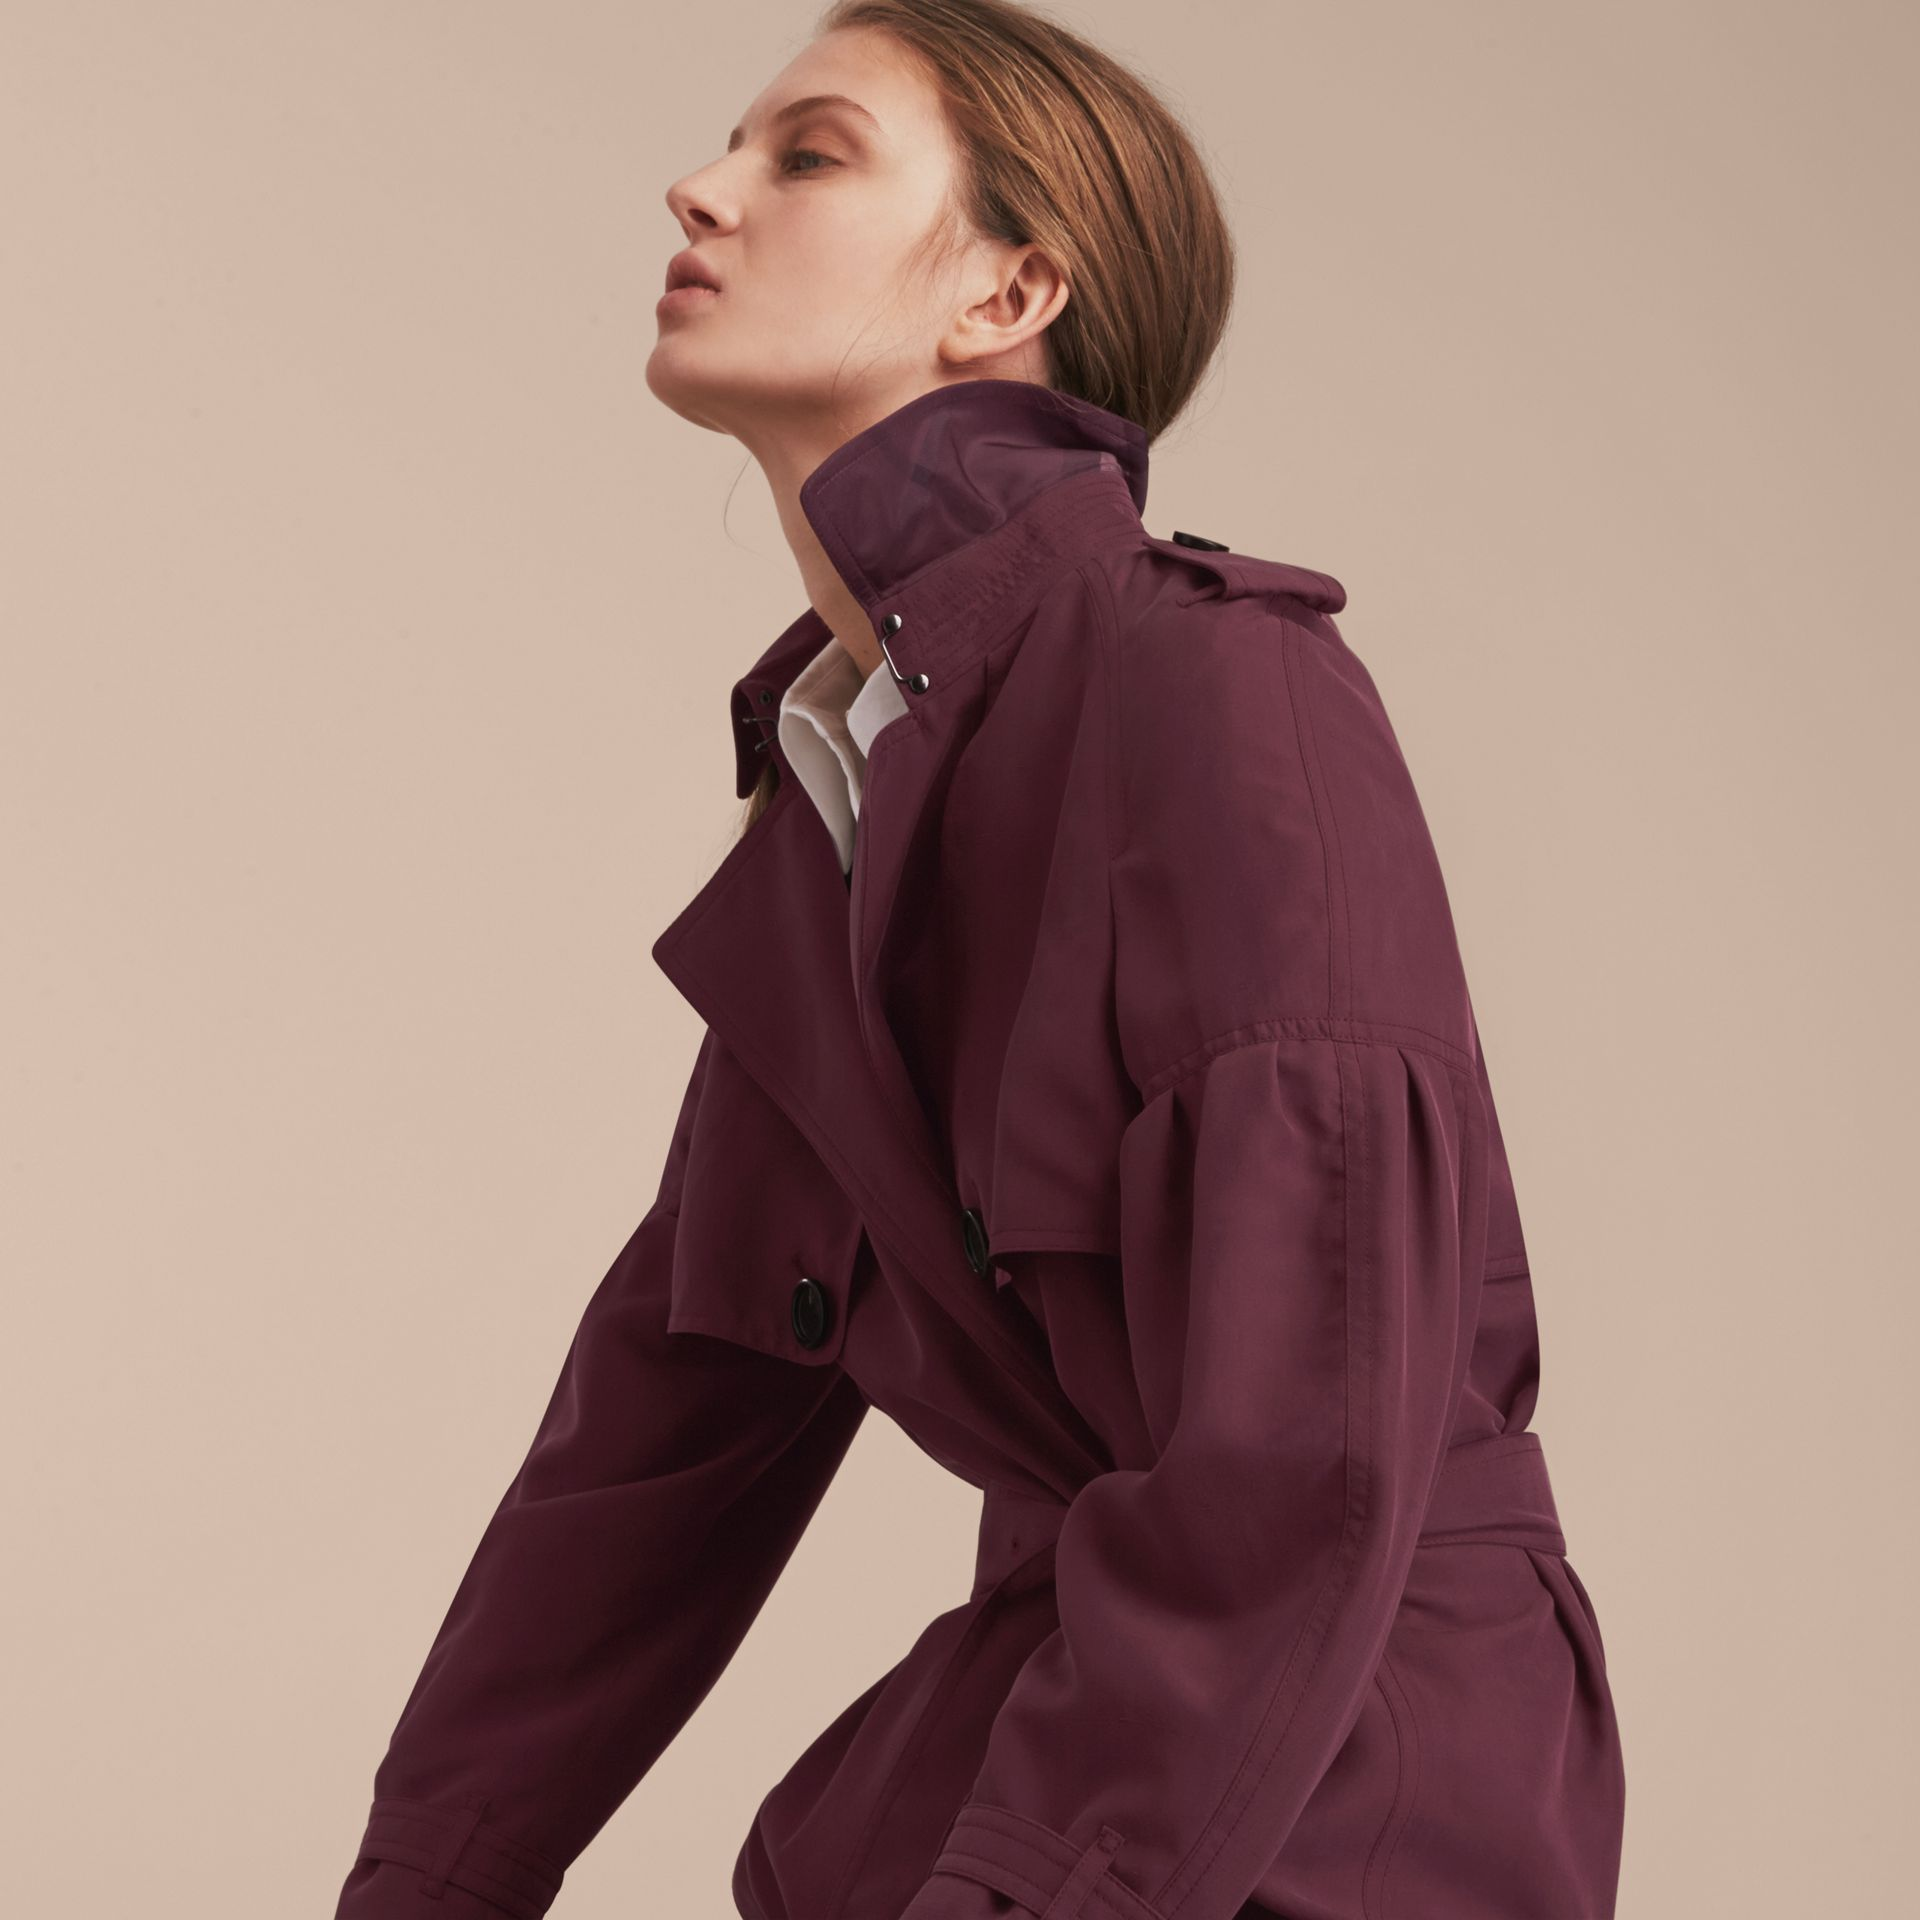 Burgundy Oversize Silk Trench Coat with Puff Sleeves Burgundy - gallery image 5